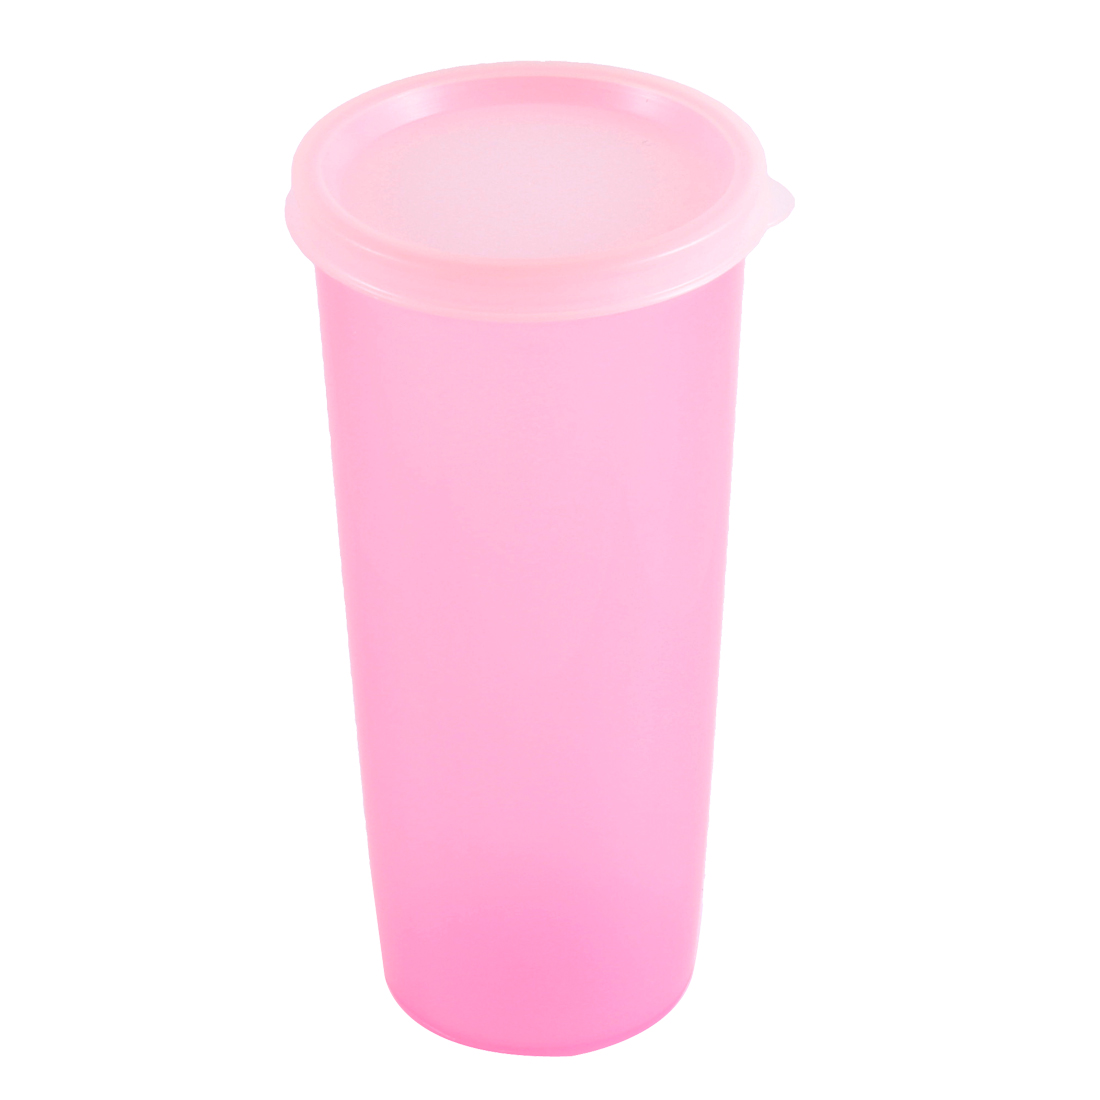 Home Office Fruit Juice Water Bottle Plastic Drink Cup Mug 470ml Clear Fuchsia